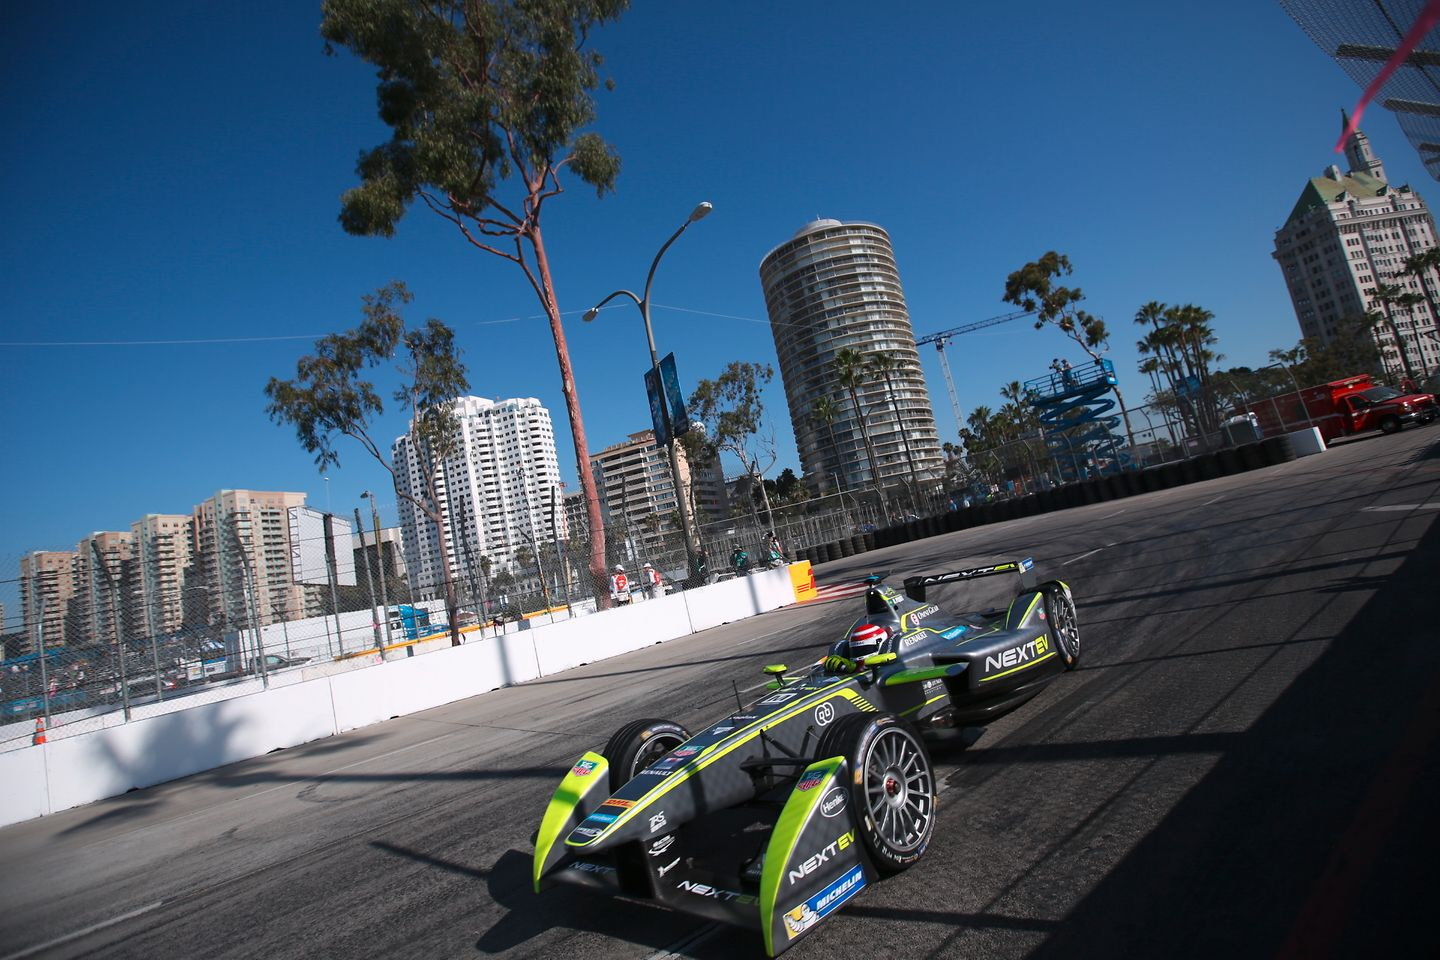 The first championship for formula cars with electric engines